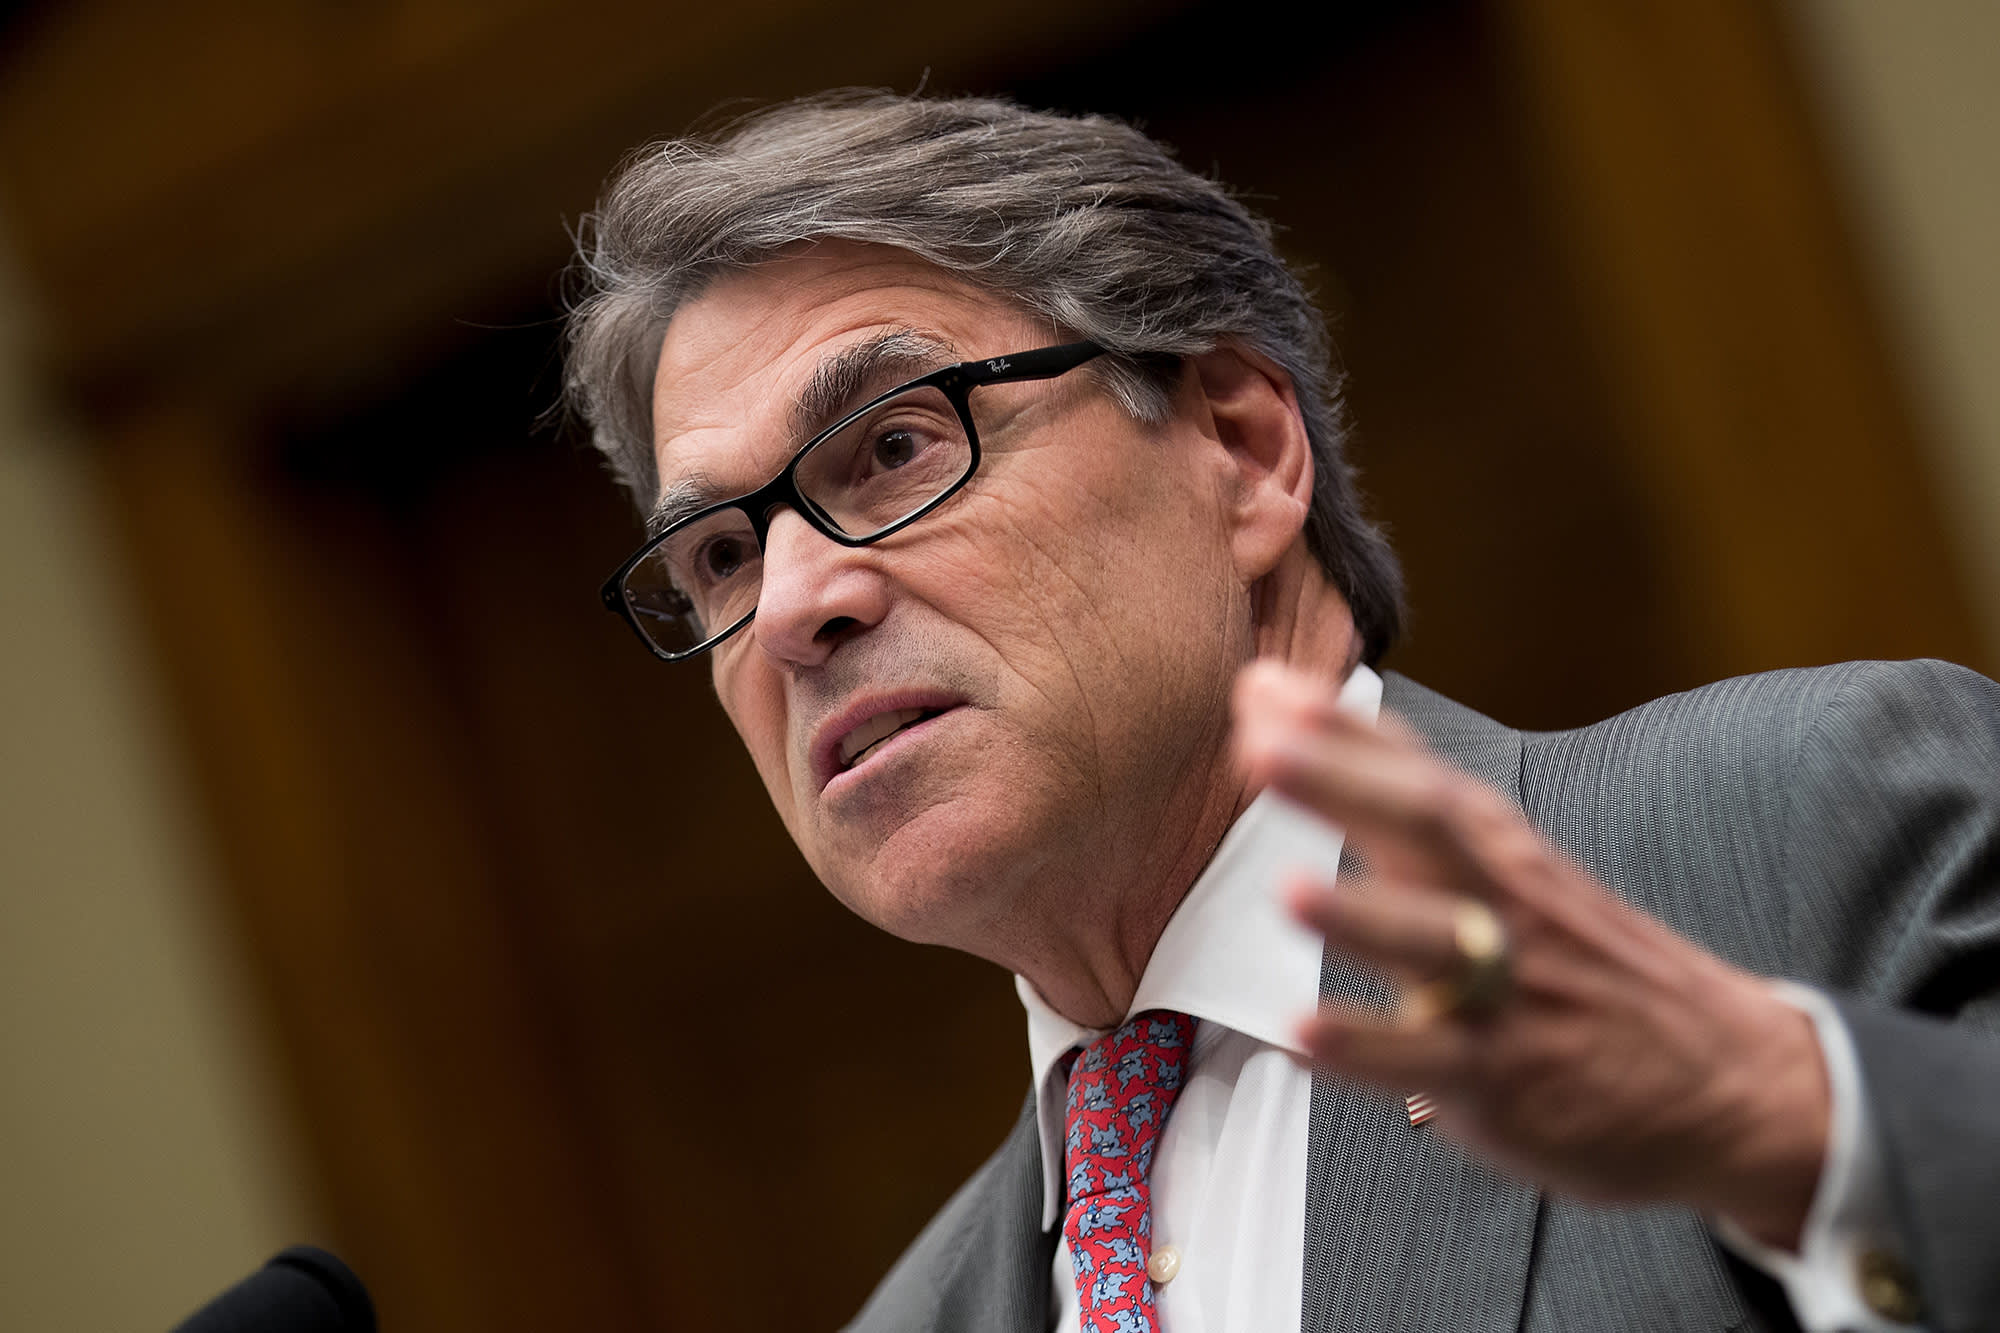 Energy Secretary Perry expects a 'coalition effort' to put a stop to Iran's 'malign activity'